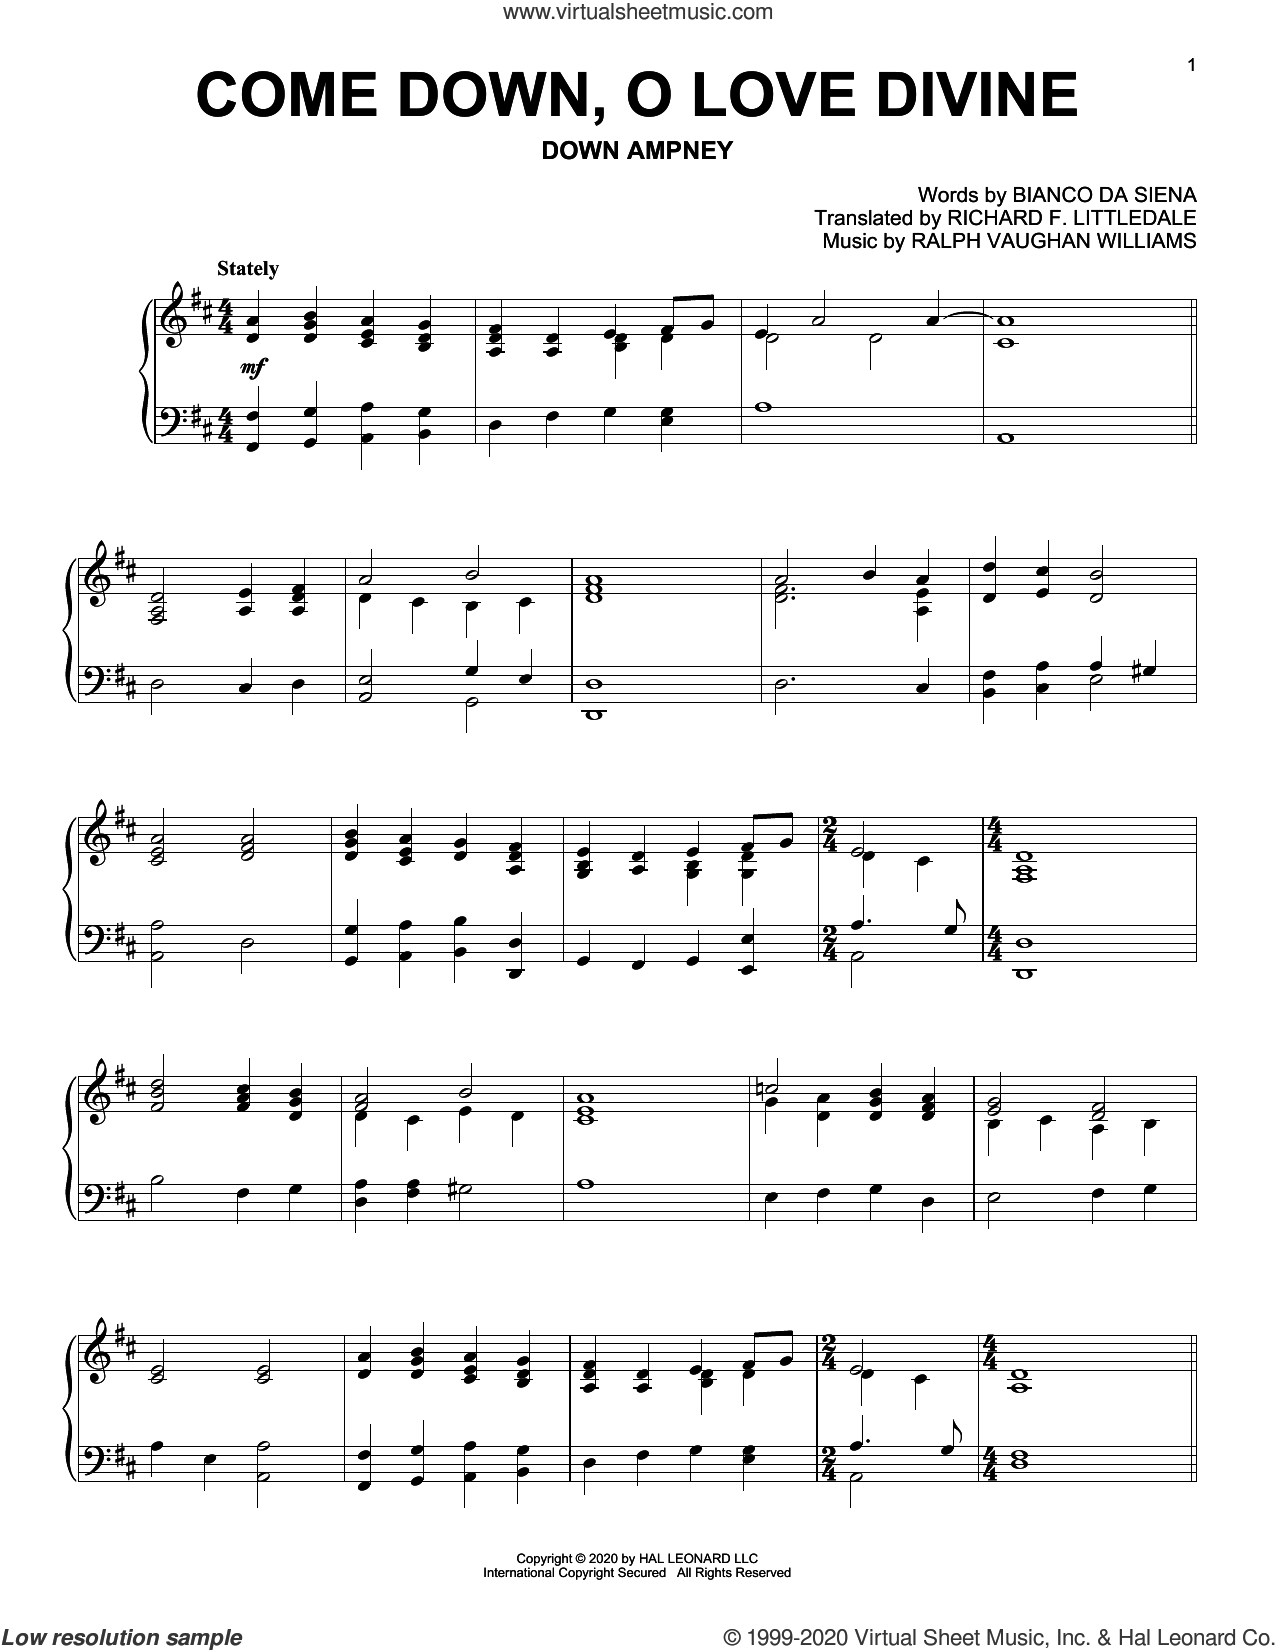 Come Down, O Love Divine sheet music for piano solo by Ralph Vaughan Williams, Bianco Da Siena and Bianco da Siena and Ralph Vaughan Williams, intermediate skill level